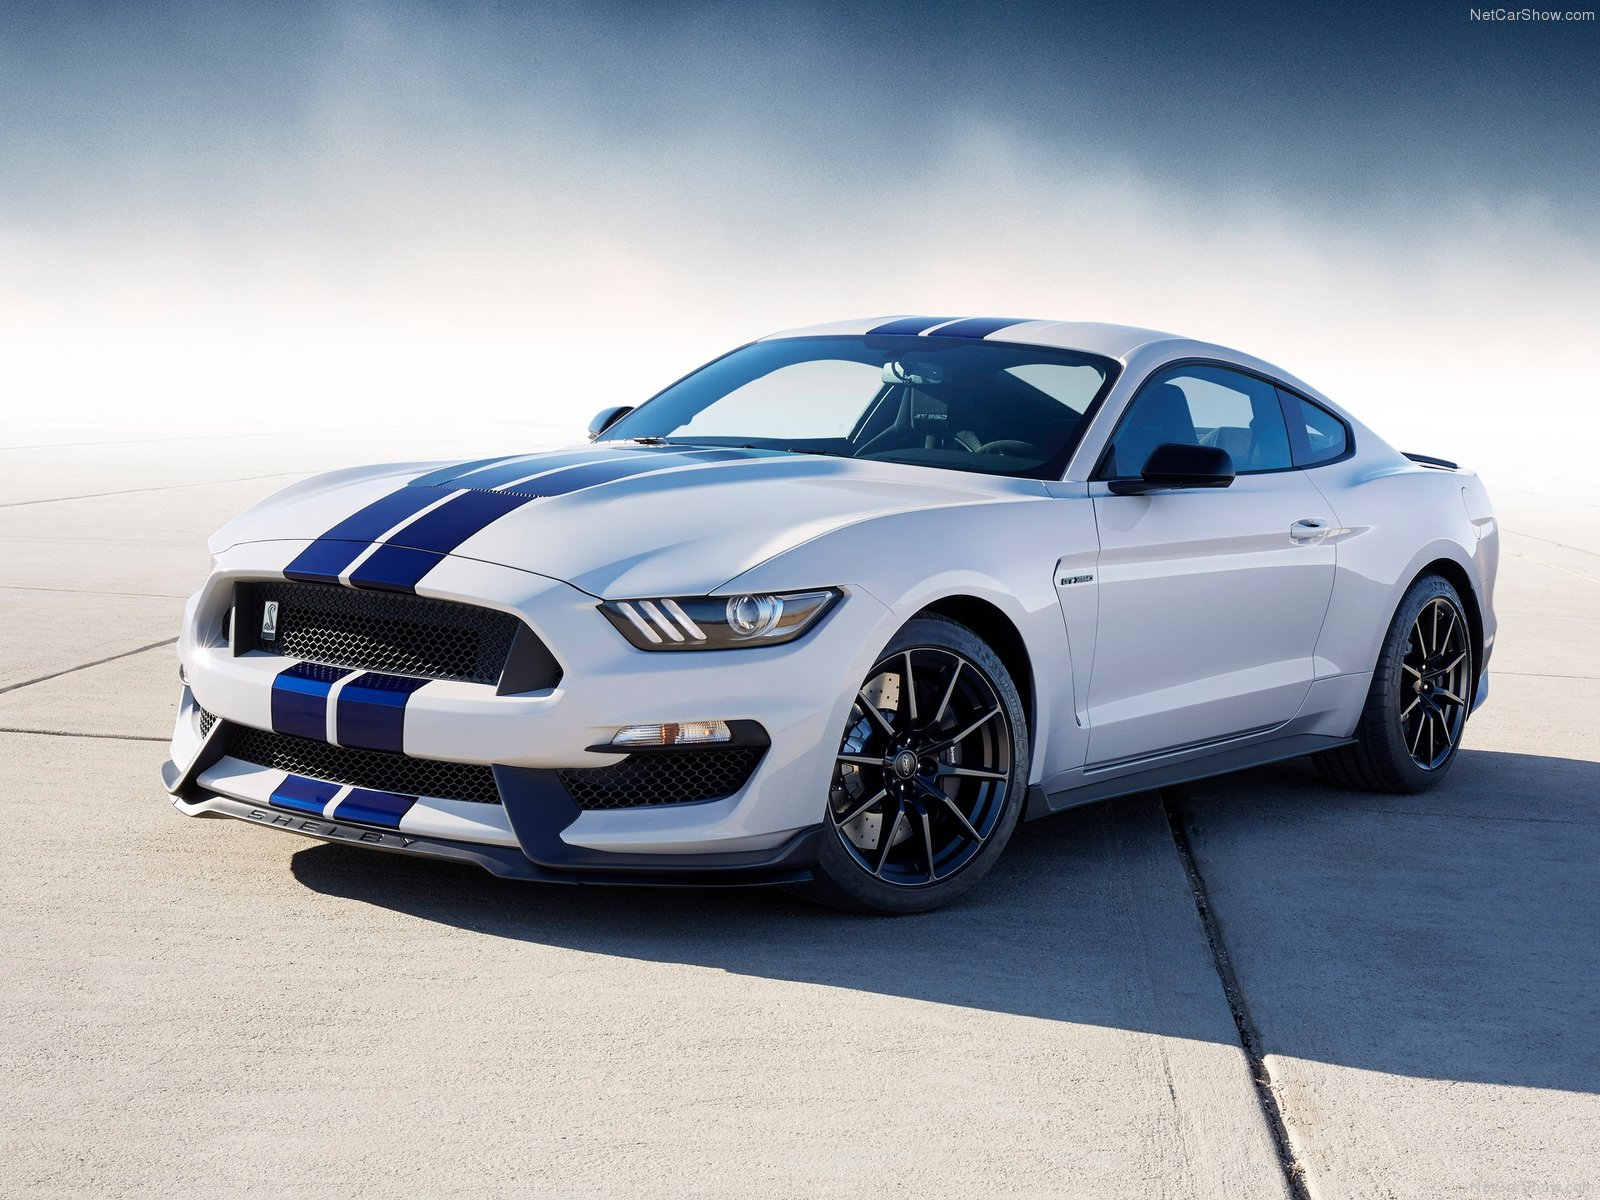 2016 Ford Mustang Shelby GT350 revealed in the US